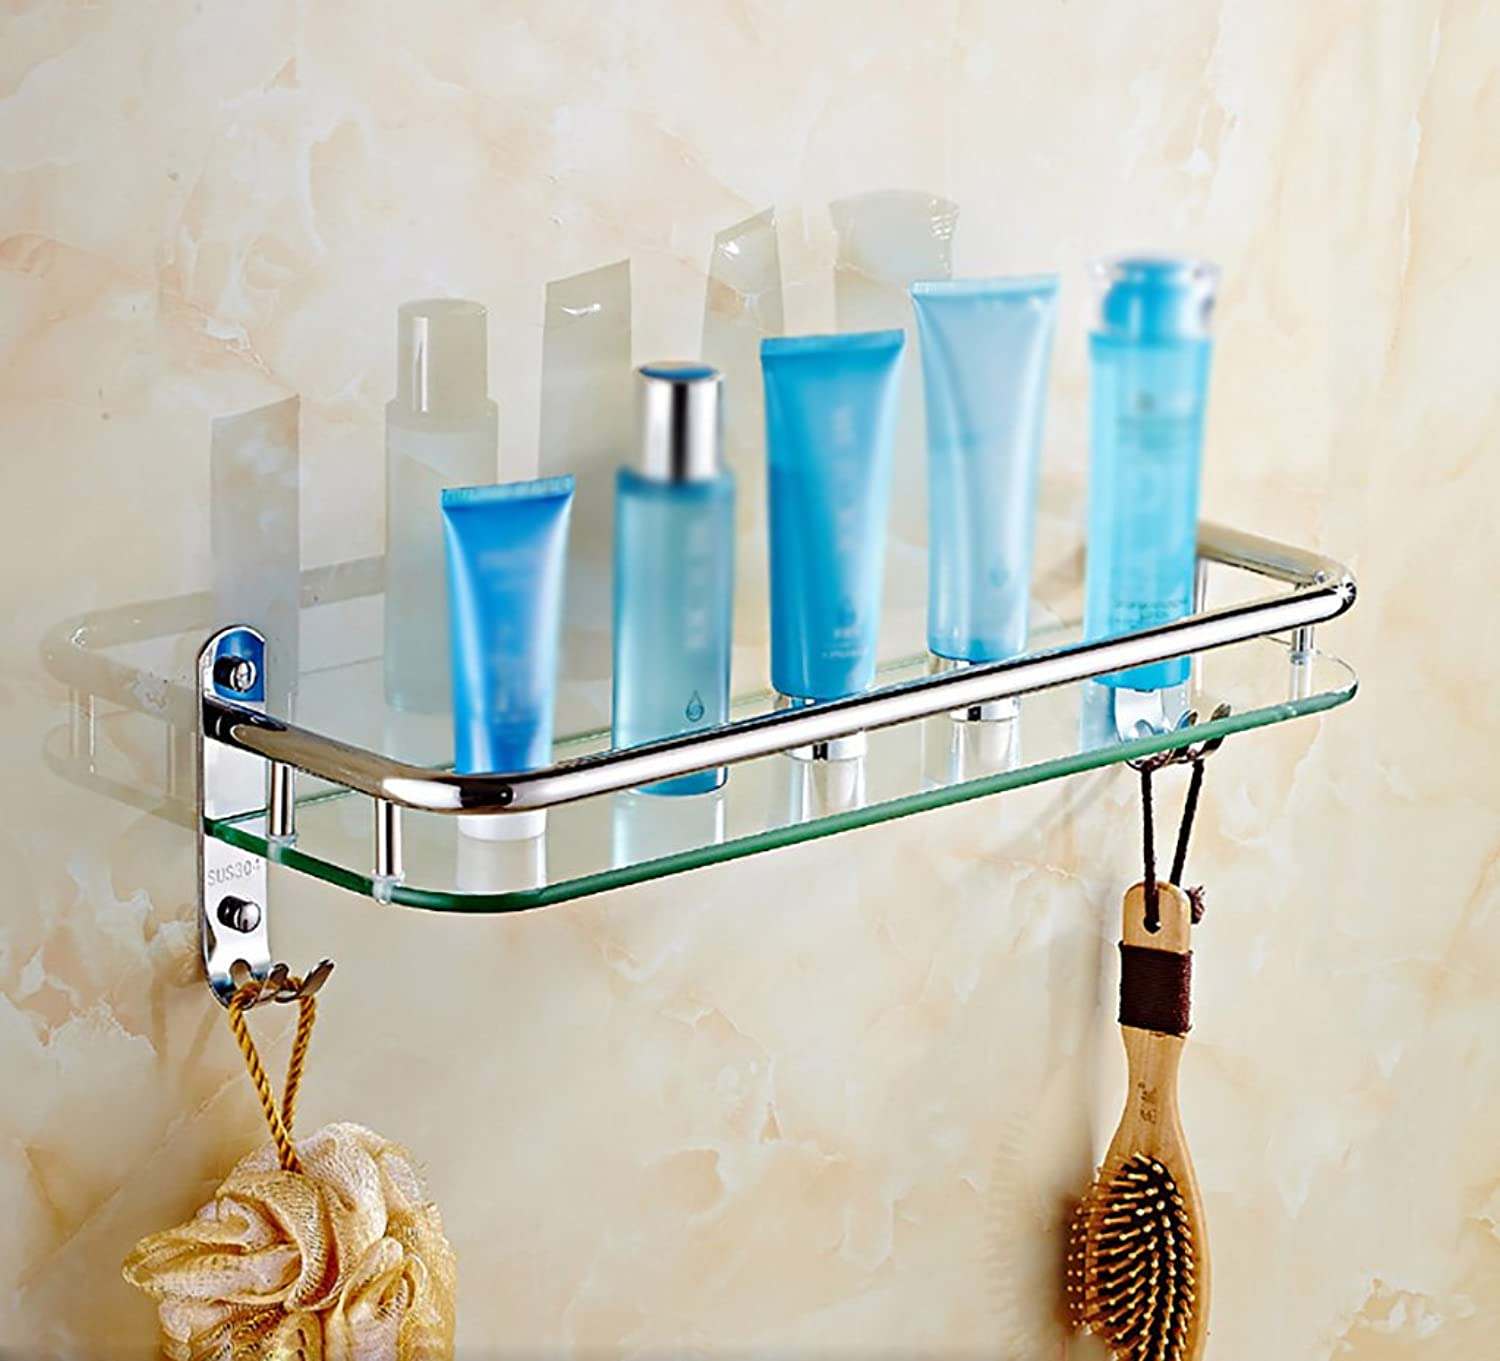 Bathroom Shelves Bathroom Glass Rectangular Shelf Wall Mounted Tempered Glass Extra Thick, Bright Section (Size   4113.513.5cm)